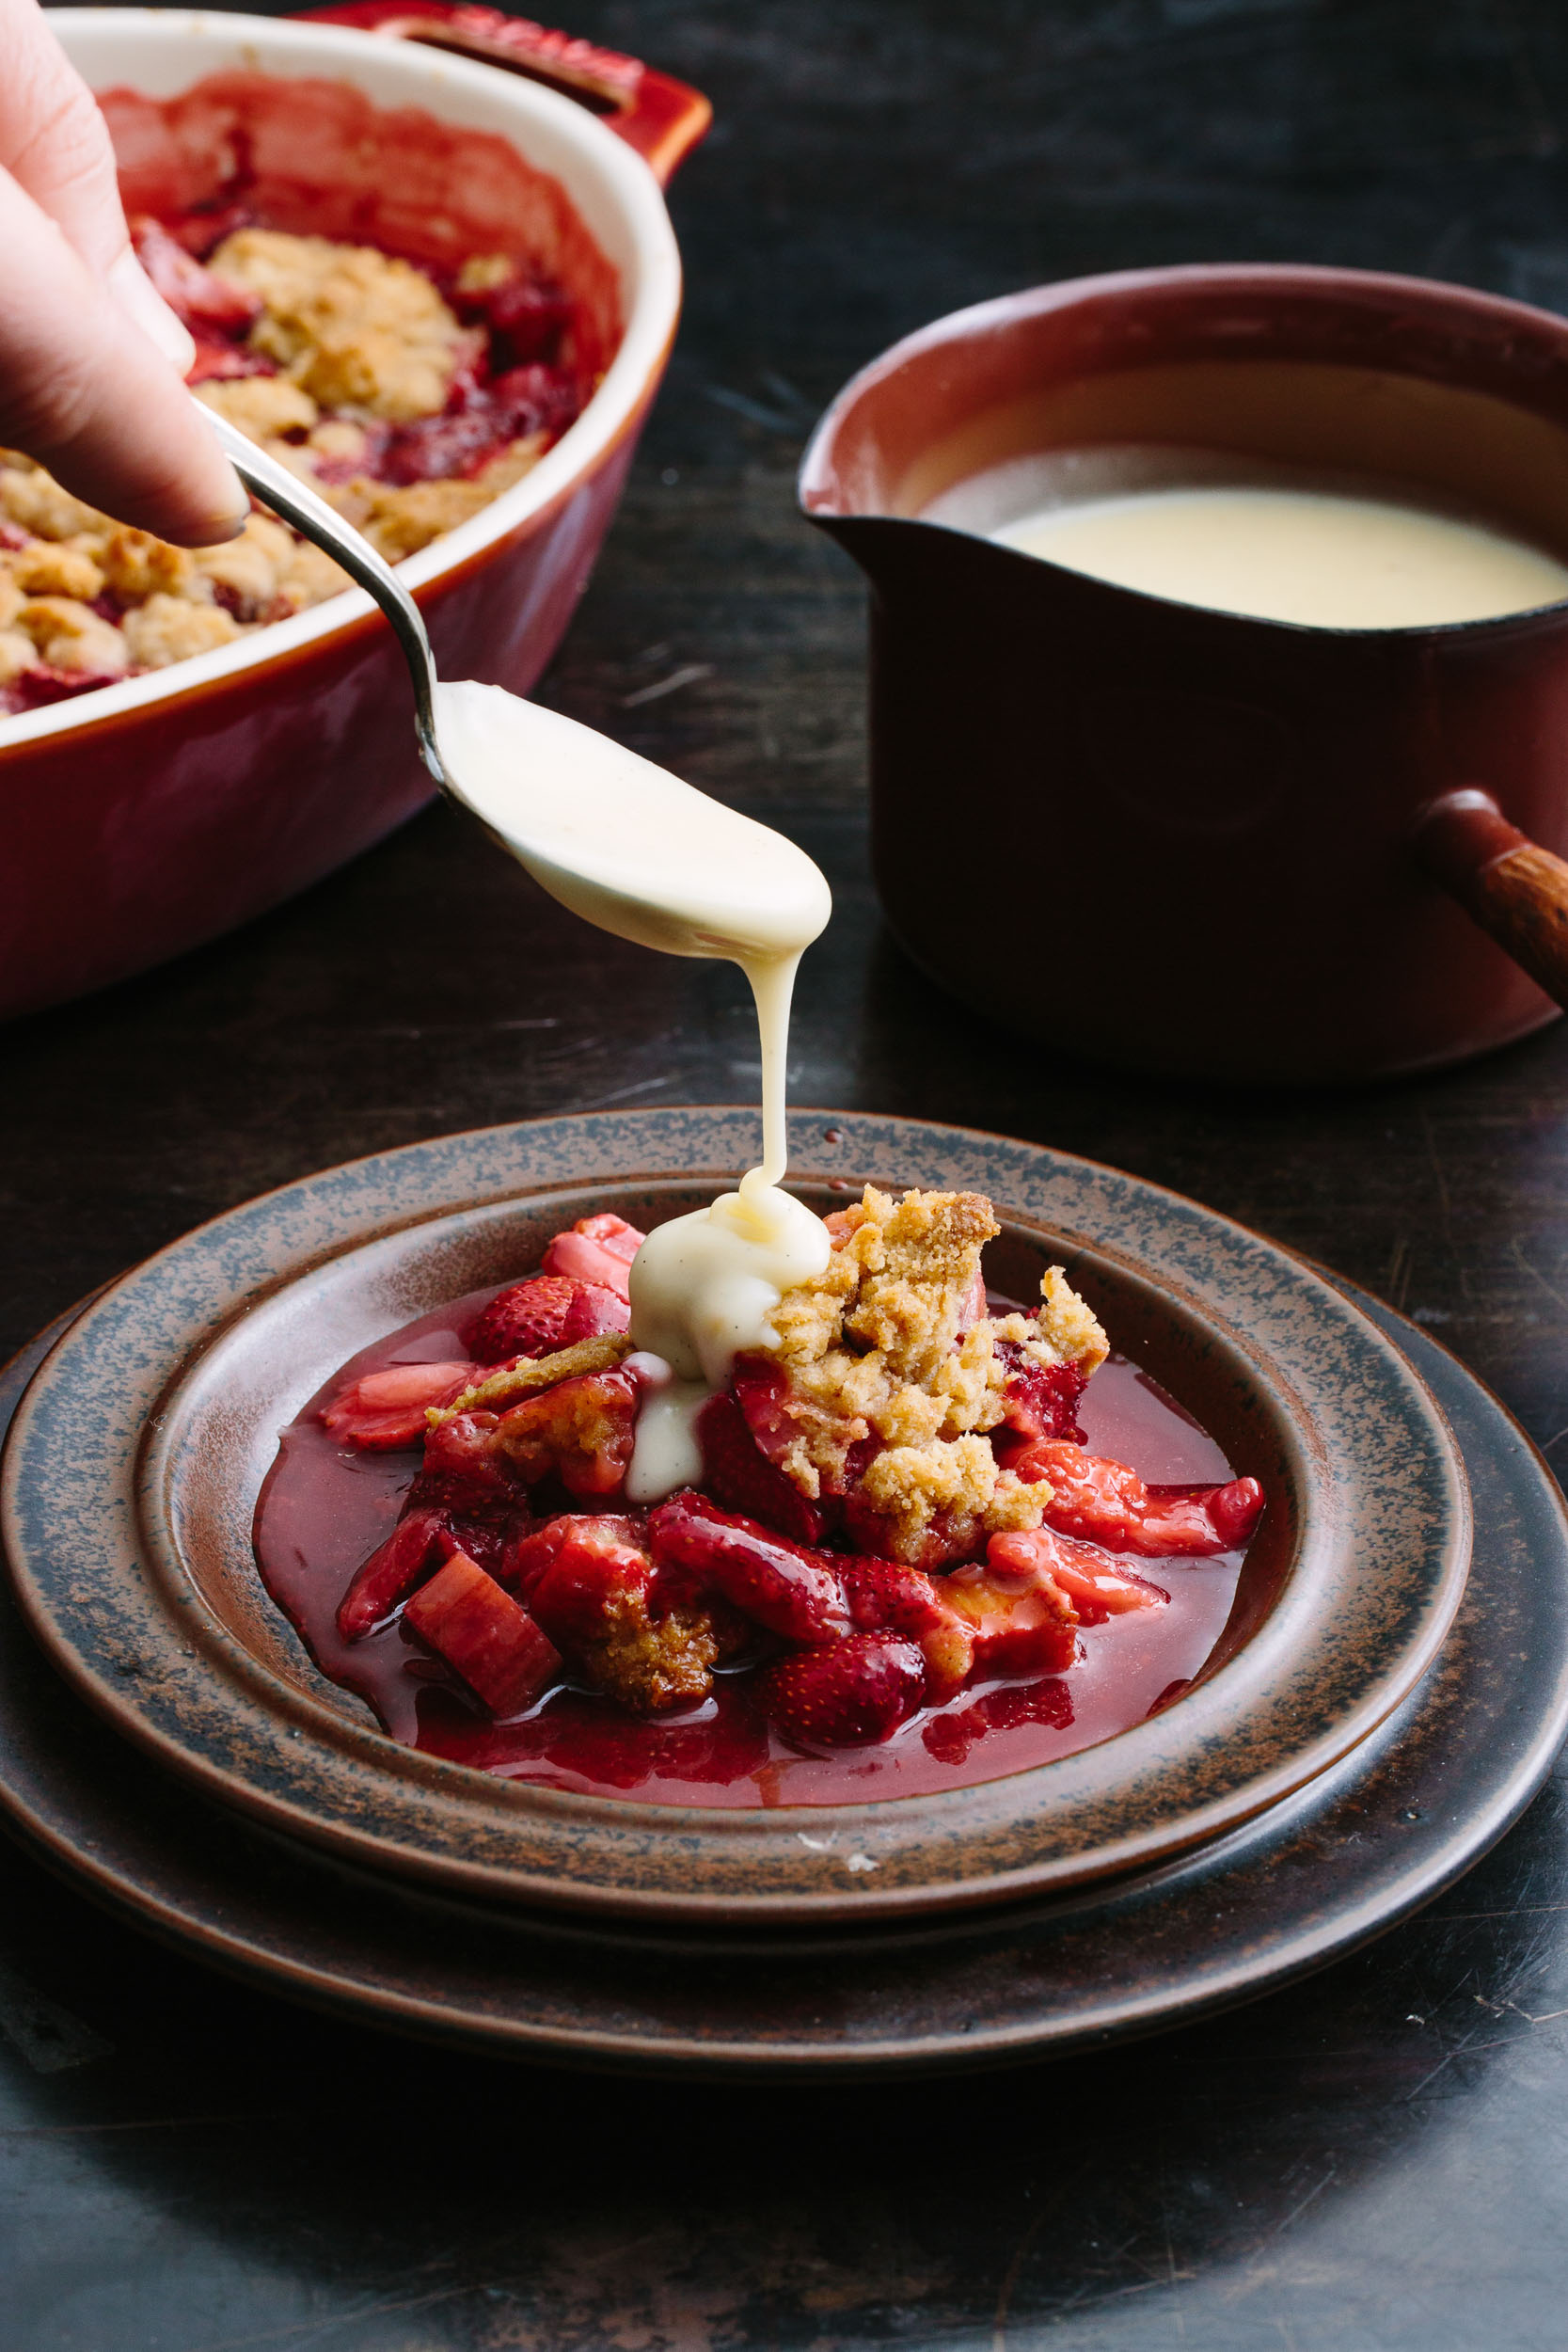 food-strawberry-rhubarb-crumble-christine-han-100.jpg